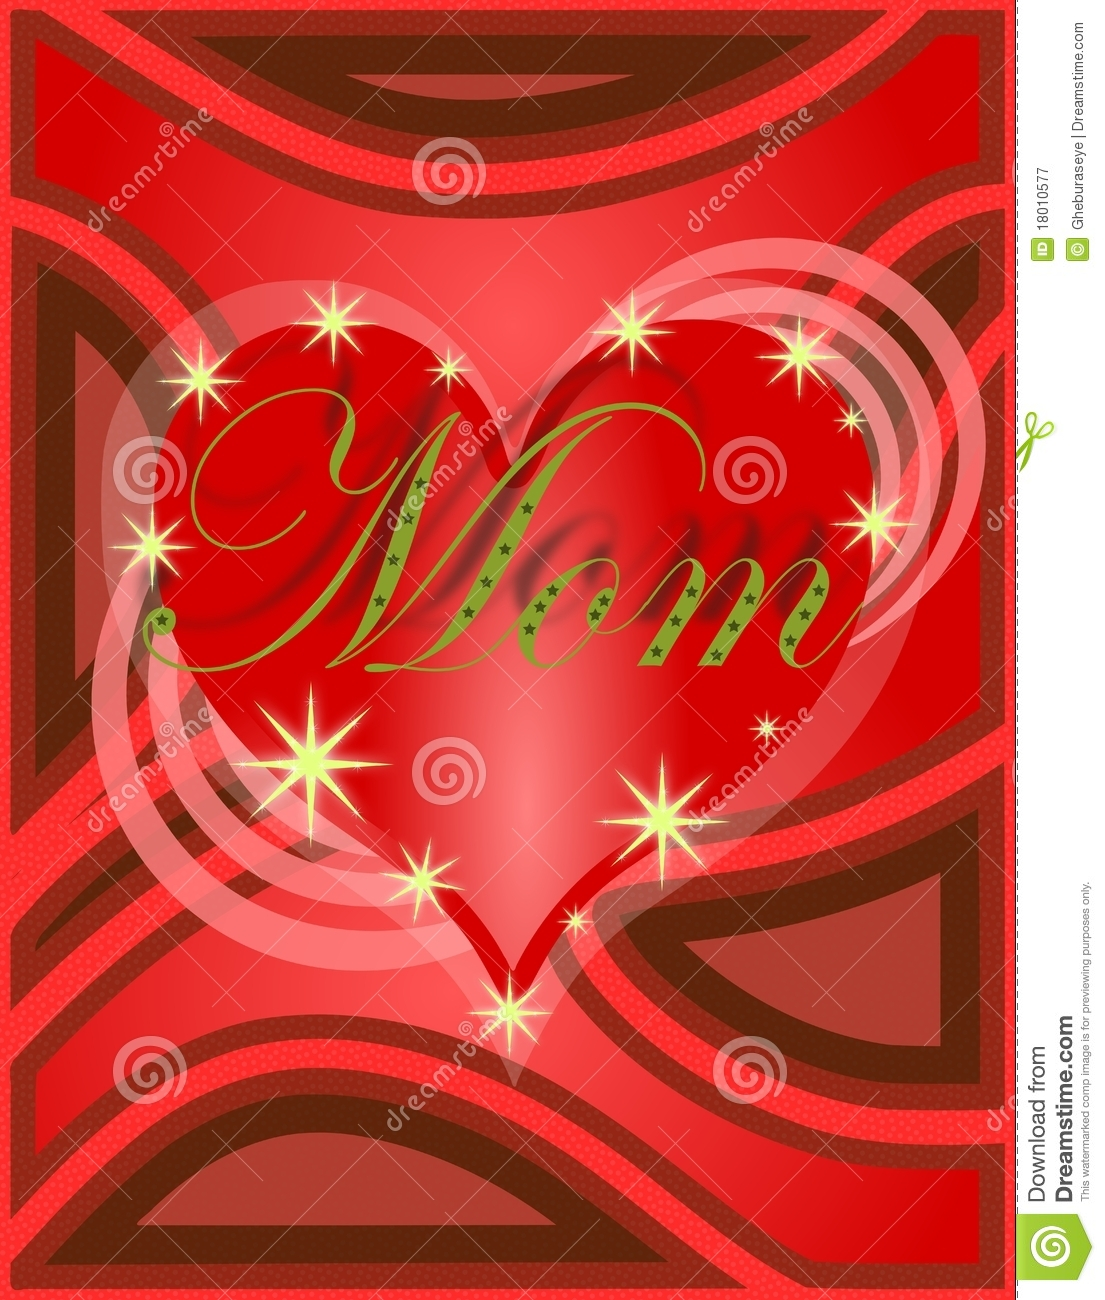 Mothers day greeting card with heart in red stock illustration mothers day greeting card with heart in red kristyandbryce Gallery